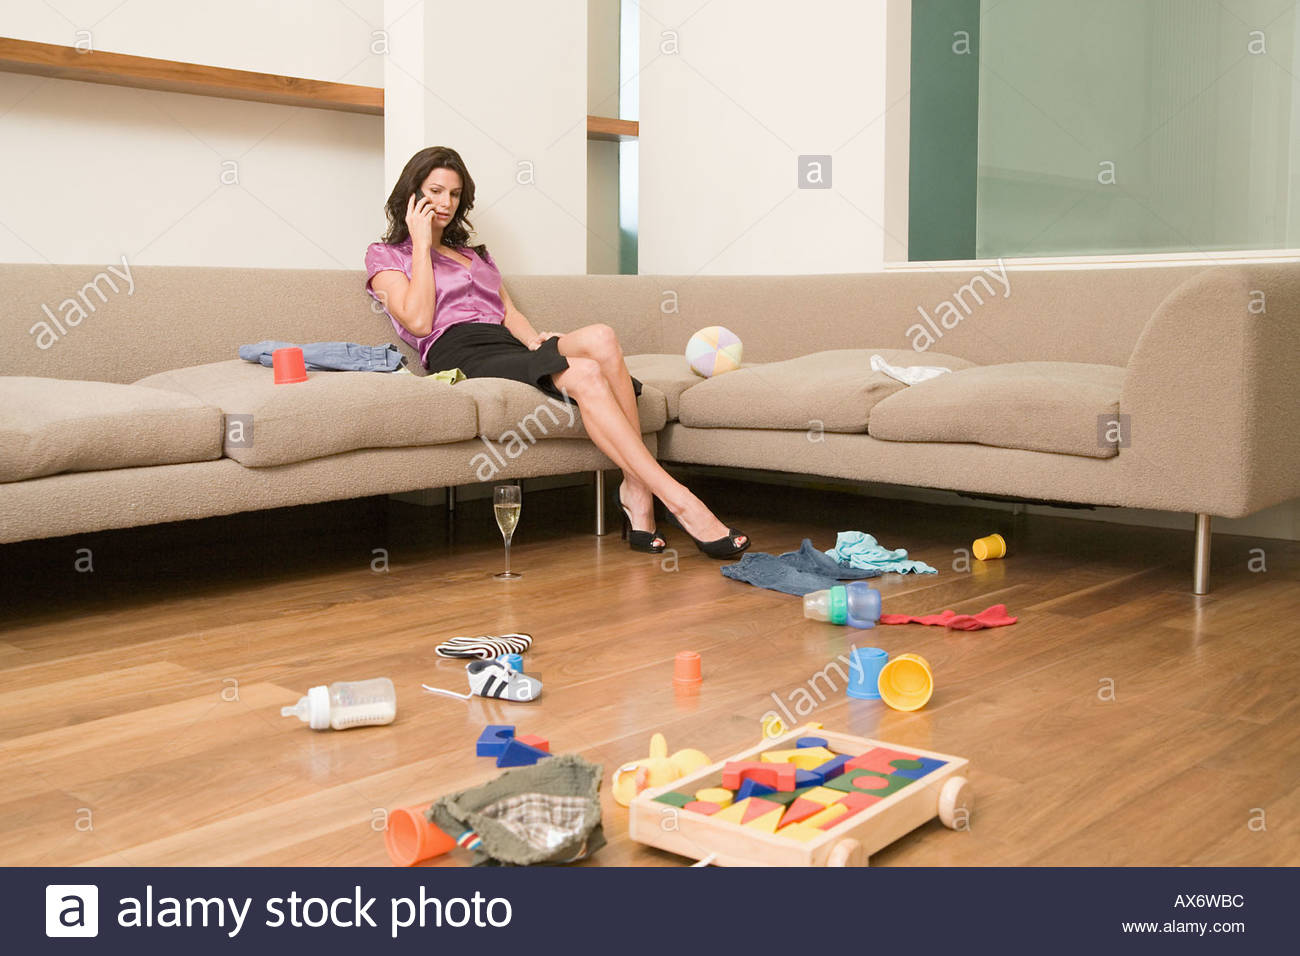 Mother on phone in messy room - Stock Image